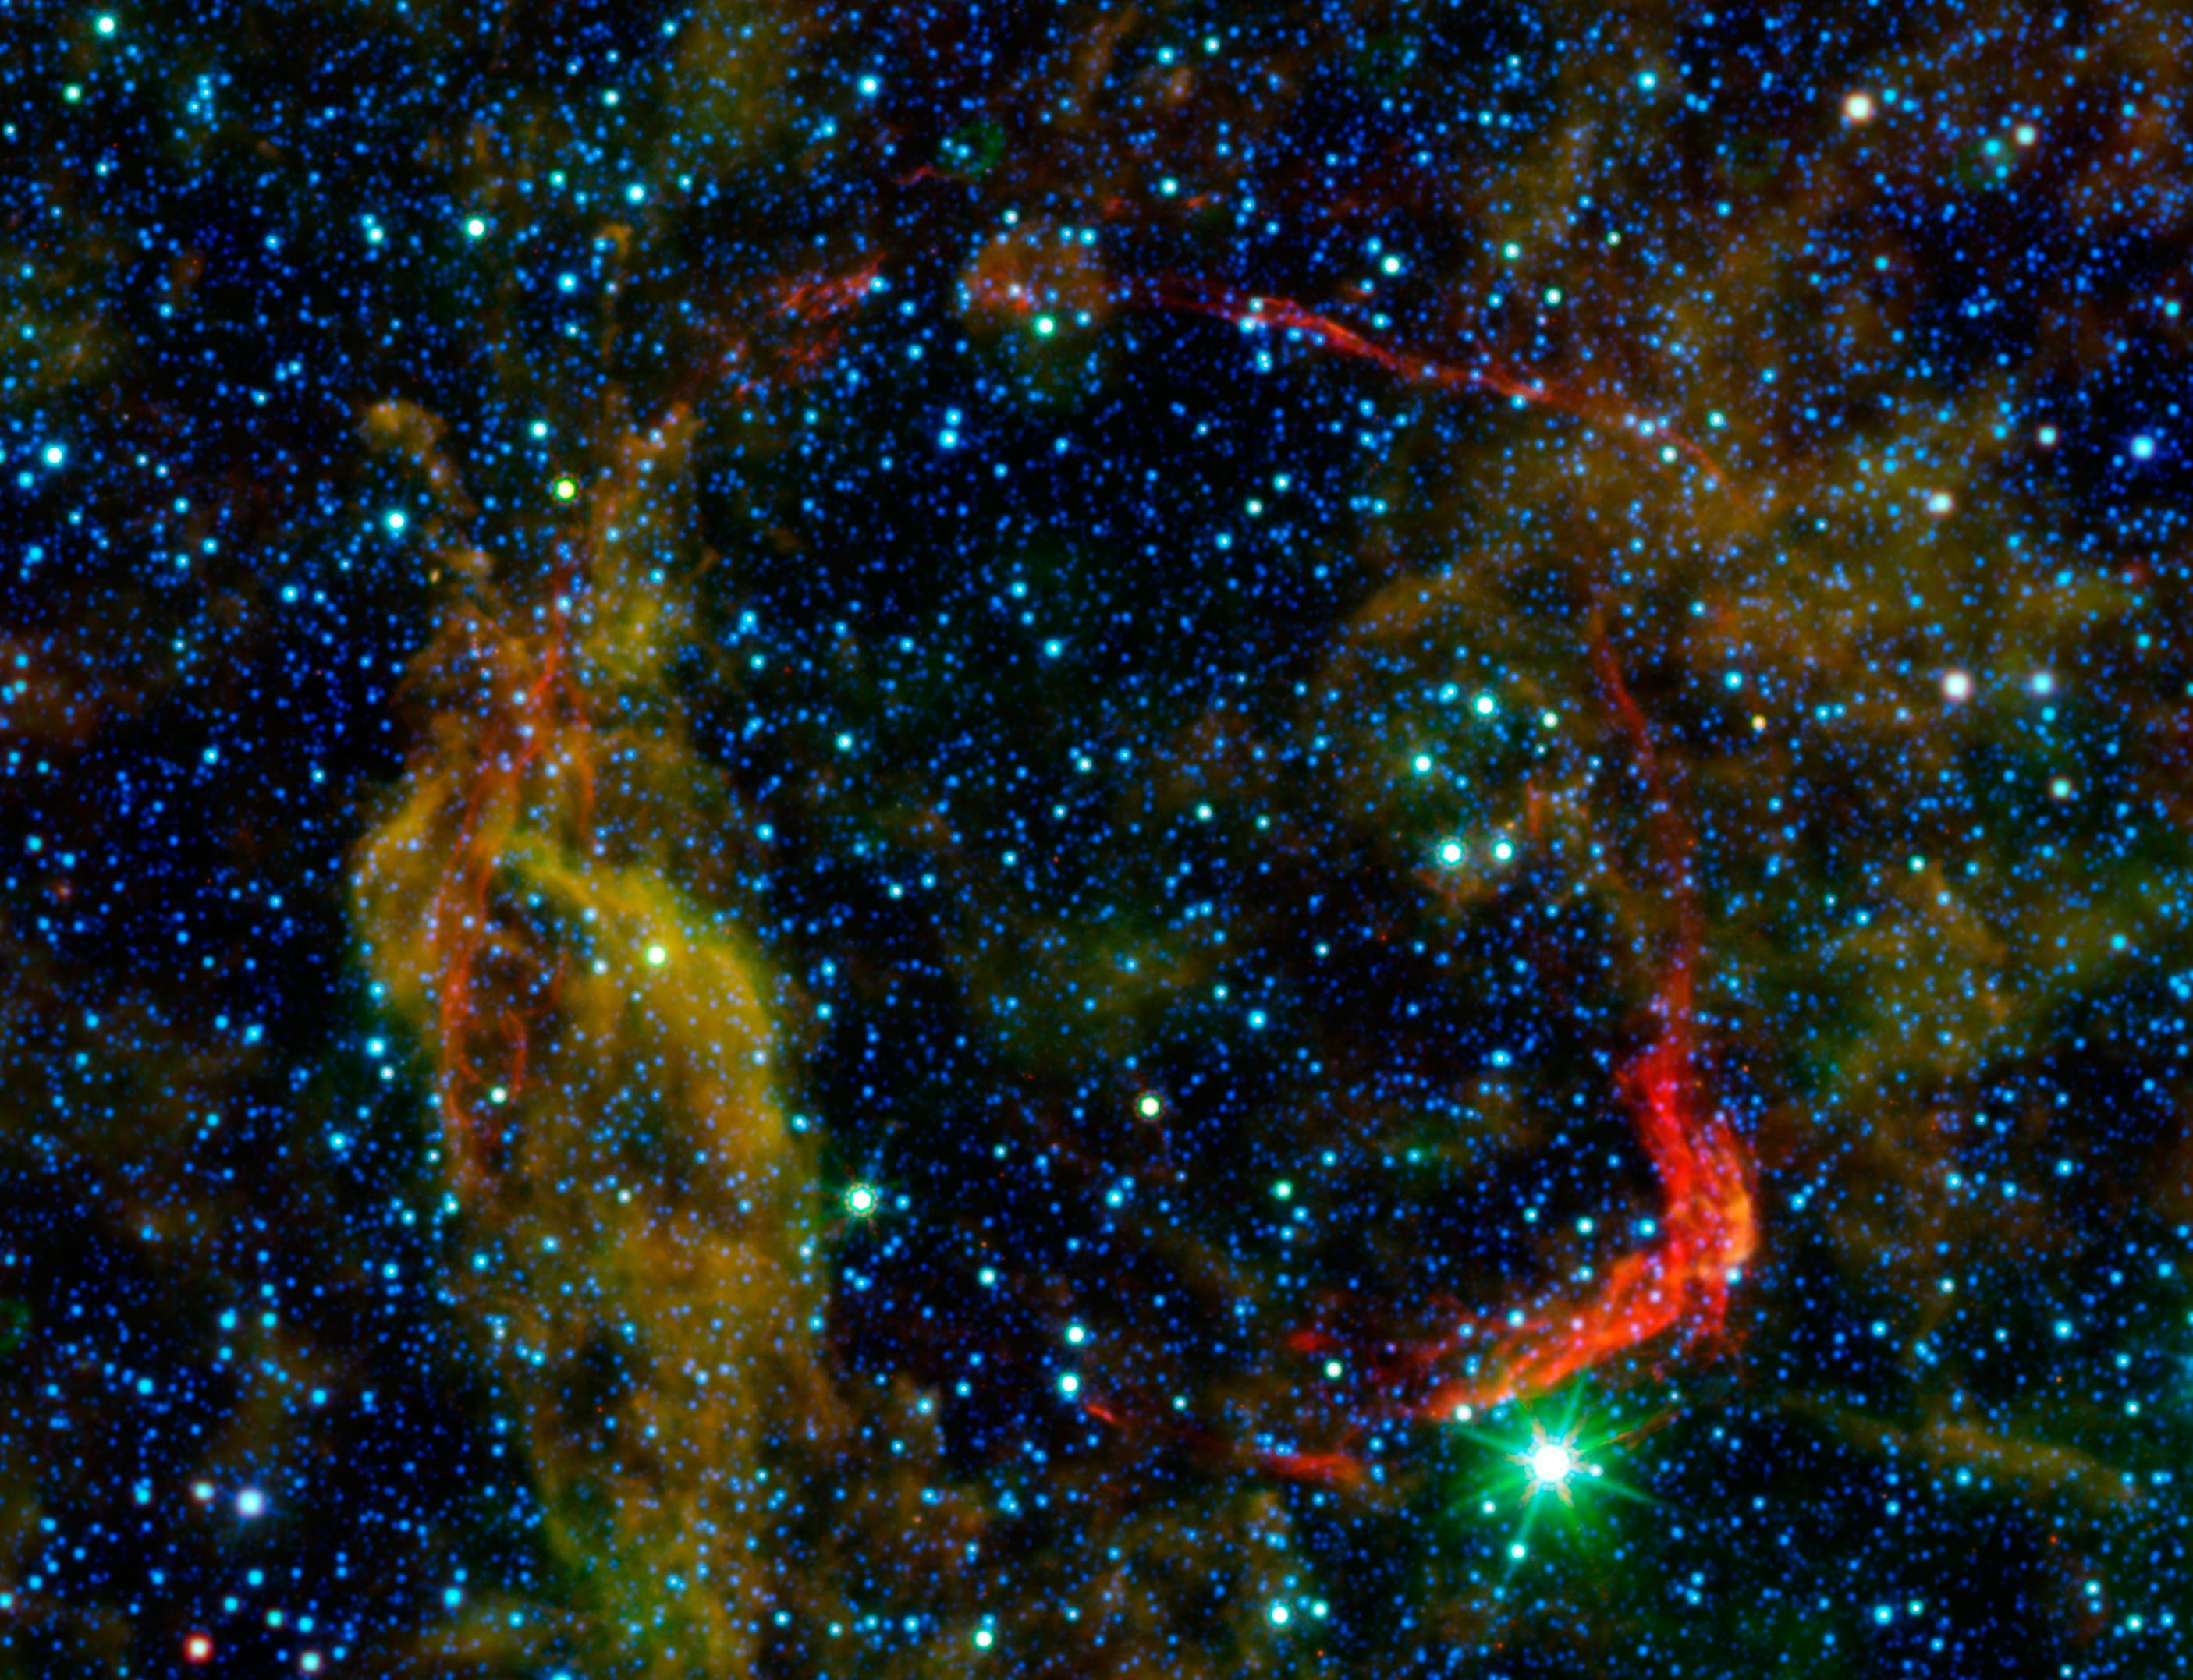 Infrared images from NASAu0027s Spitzer Space Telescope and Wide-field Infrared Survey Explorer are combined